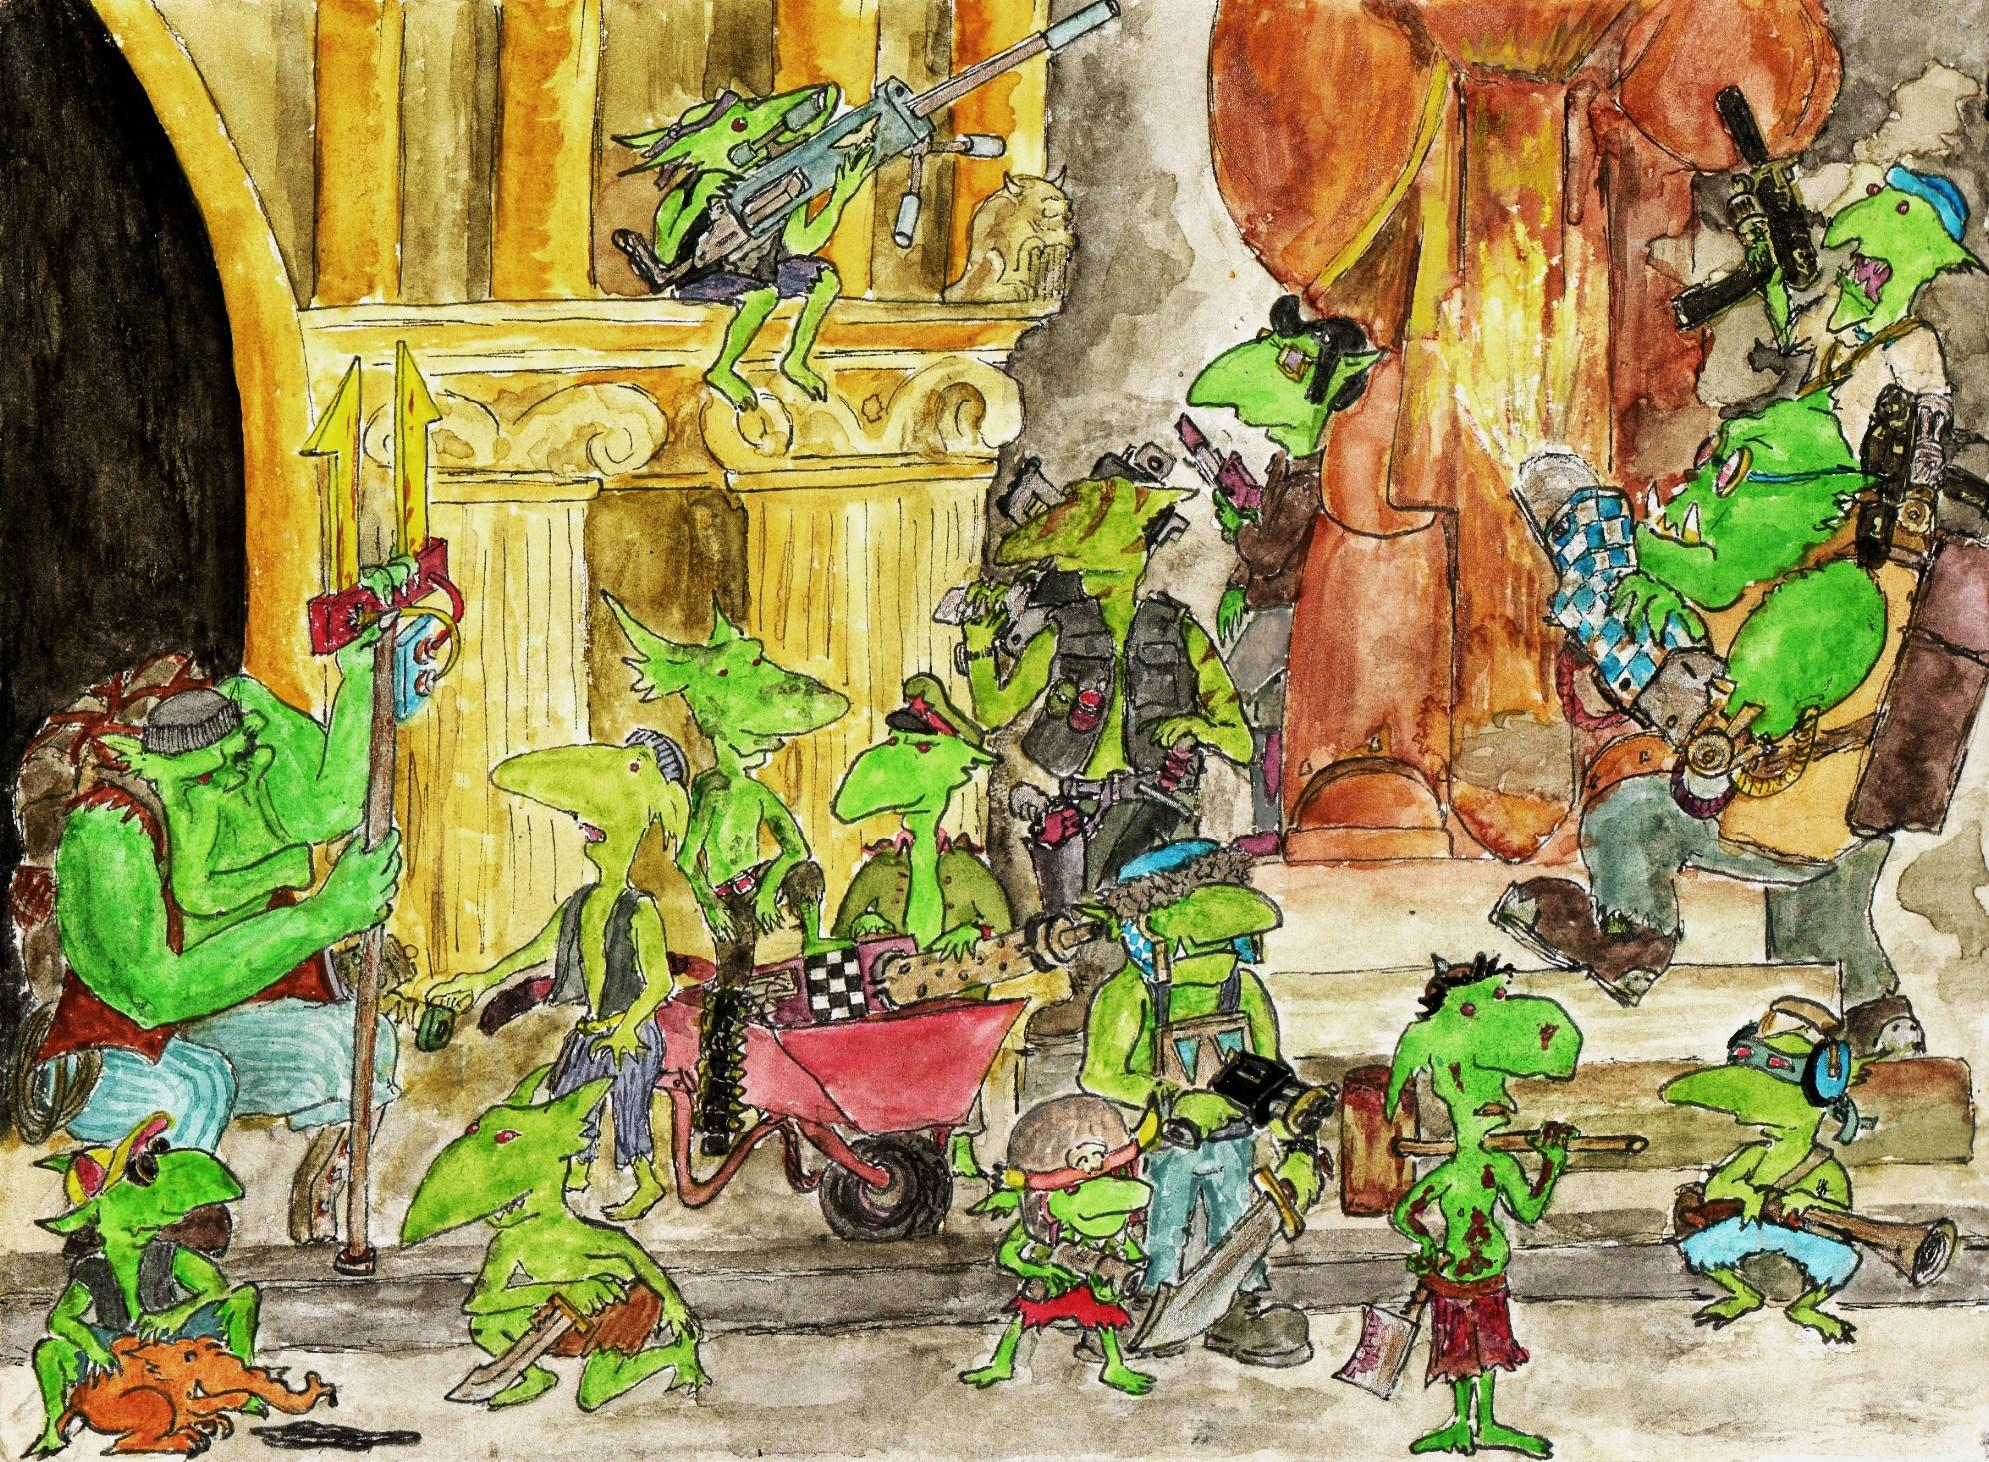 Cartoon, Drawing, Graphic, Grots, Humour, Illustration, Orks, Sketch, Watercolour